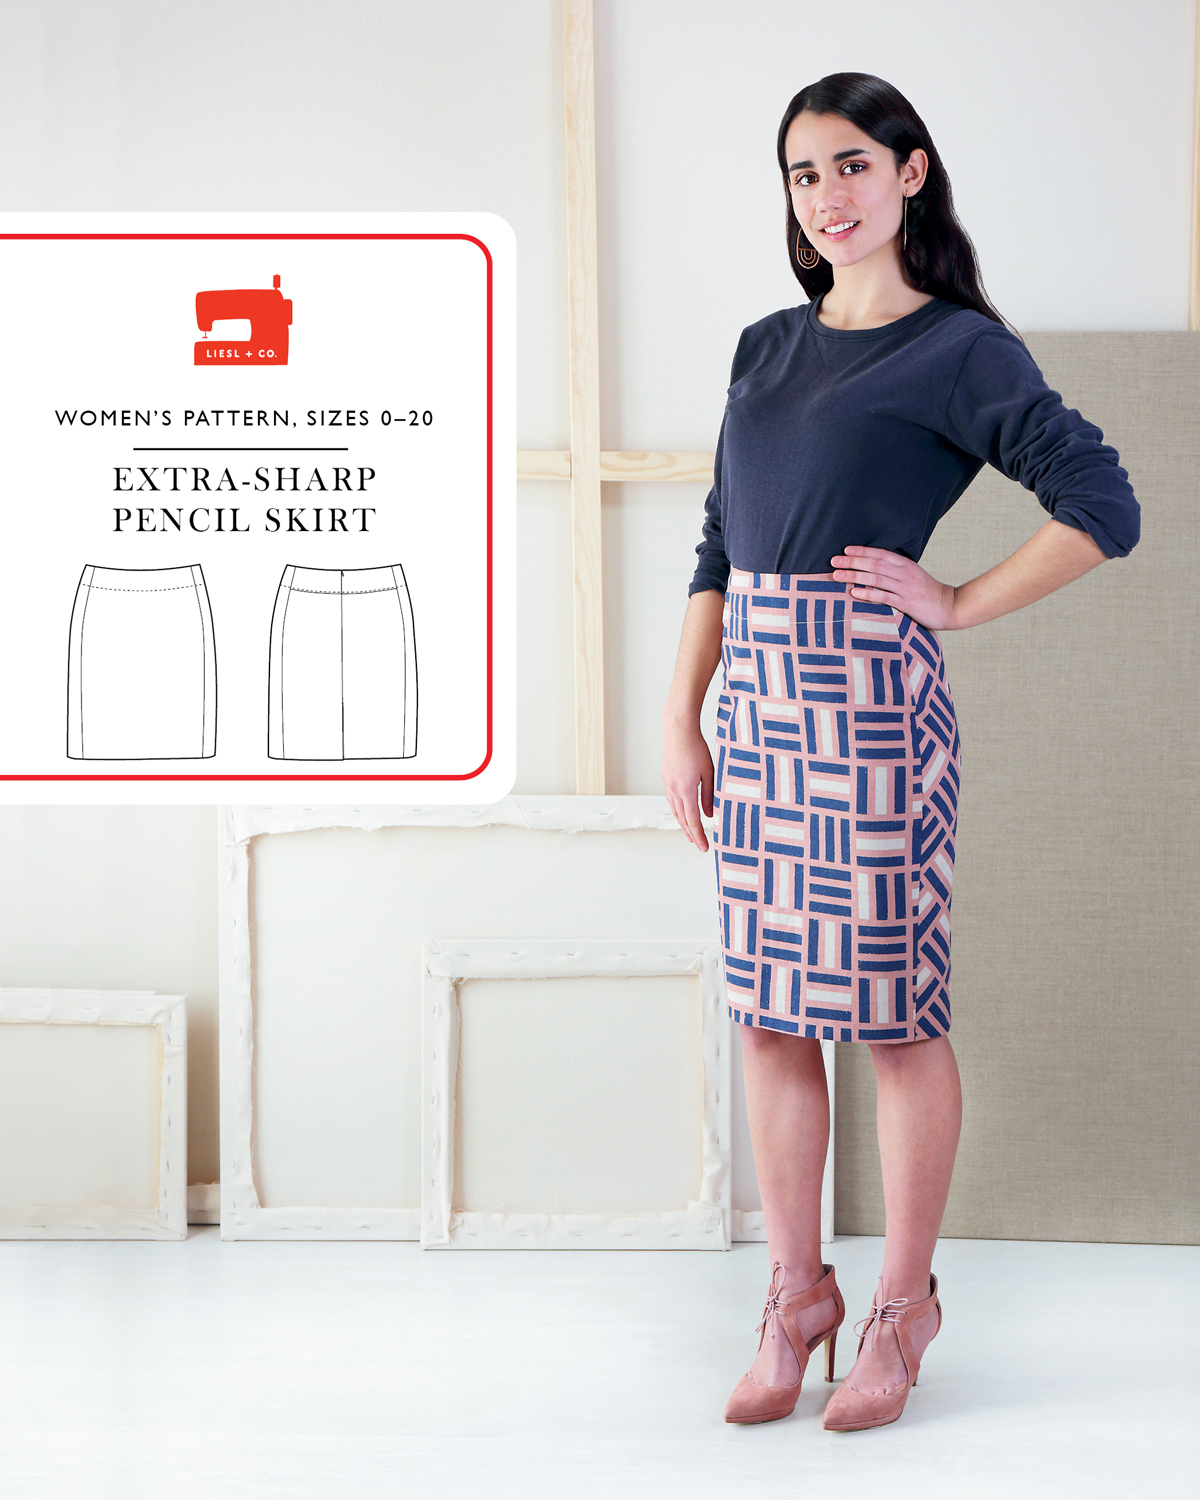 Introducing the Liesl + Co. Extra-Sharp Pencil Skirt Sewing Pattern ...